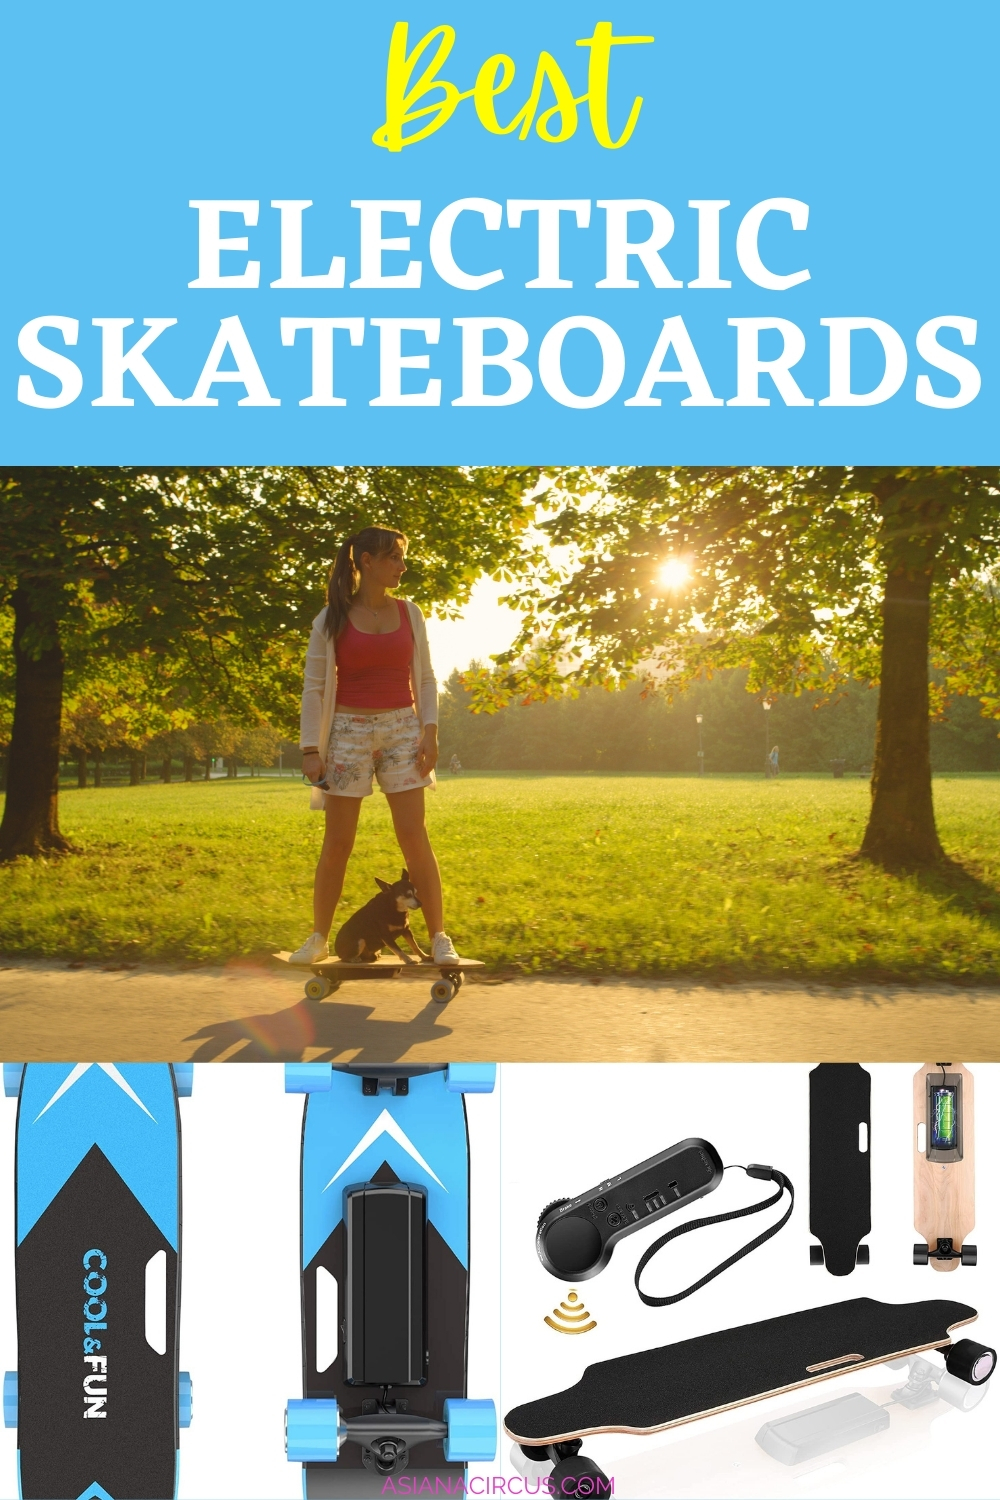 Best Electric Skateboards For Adults & Kids (1)